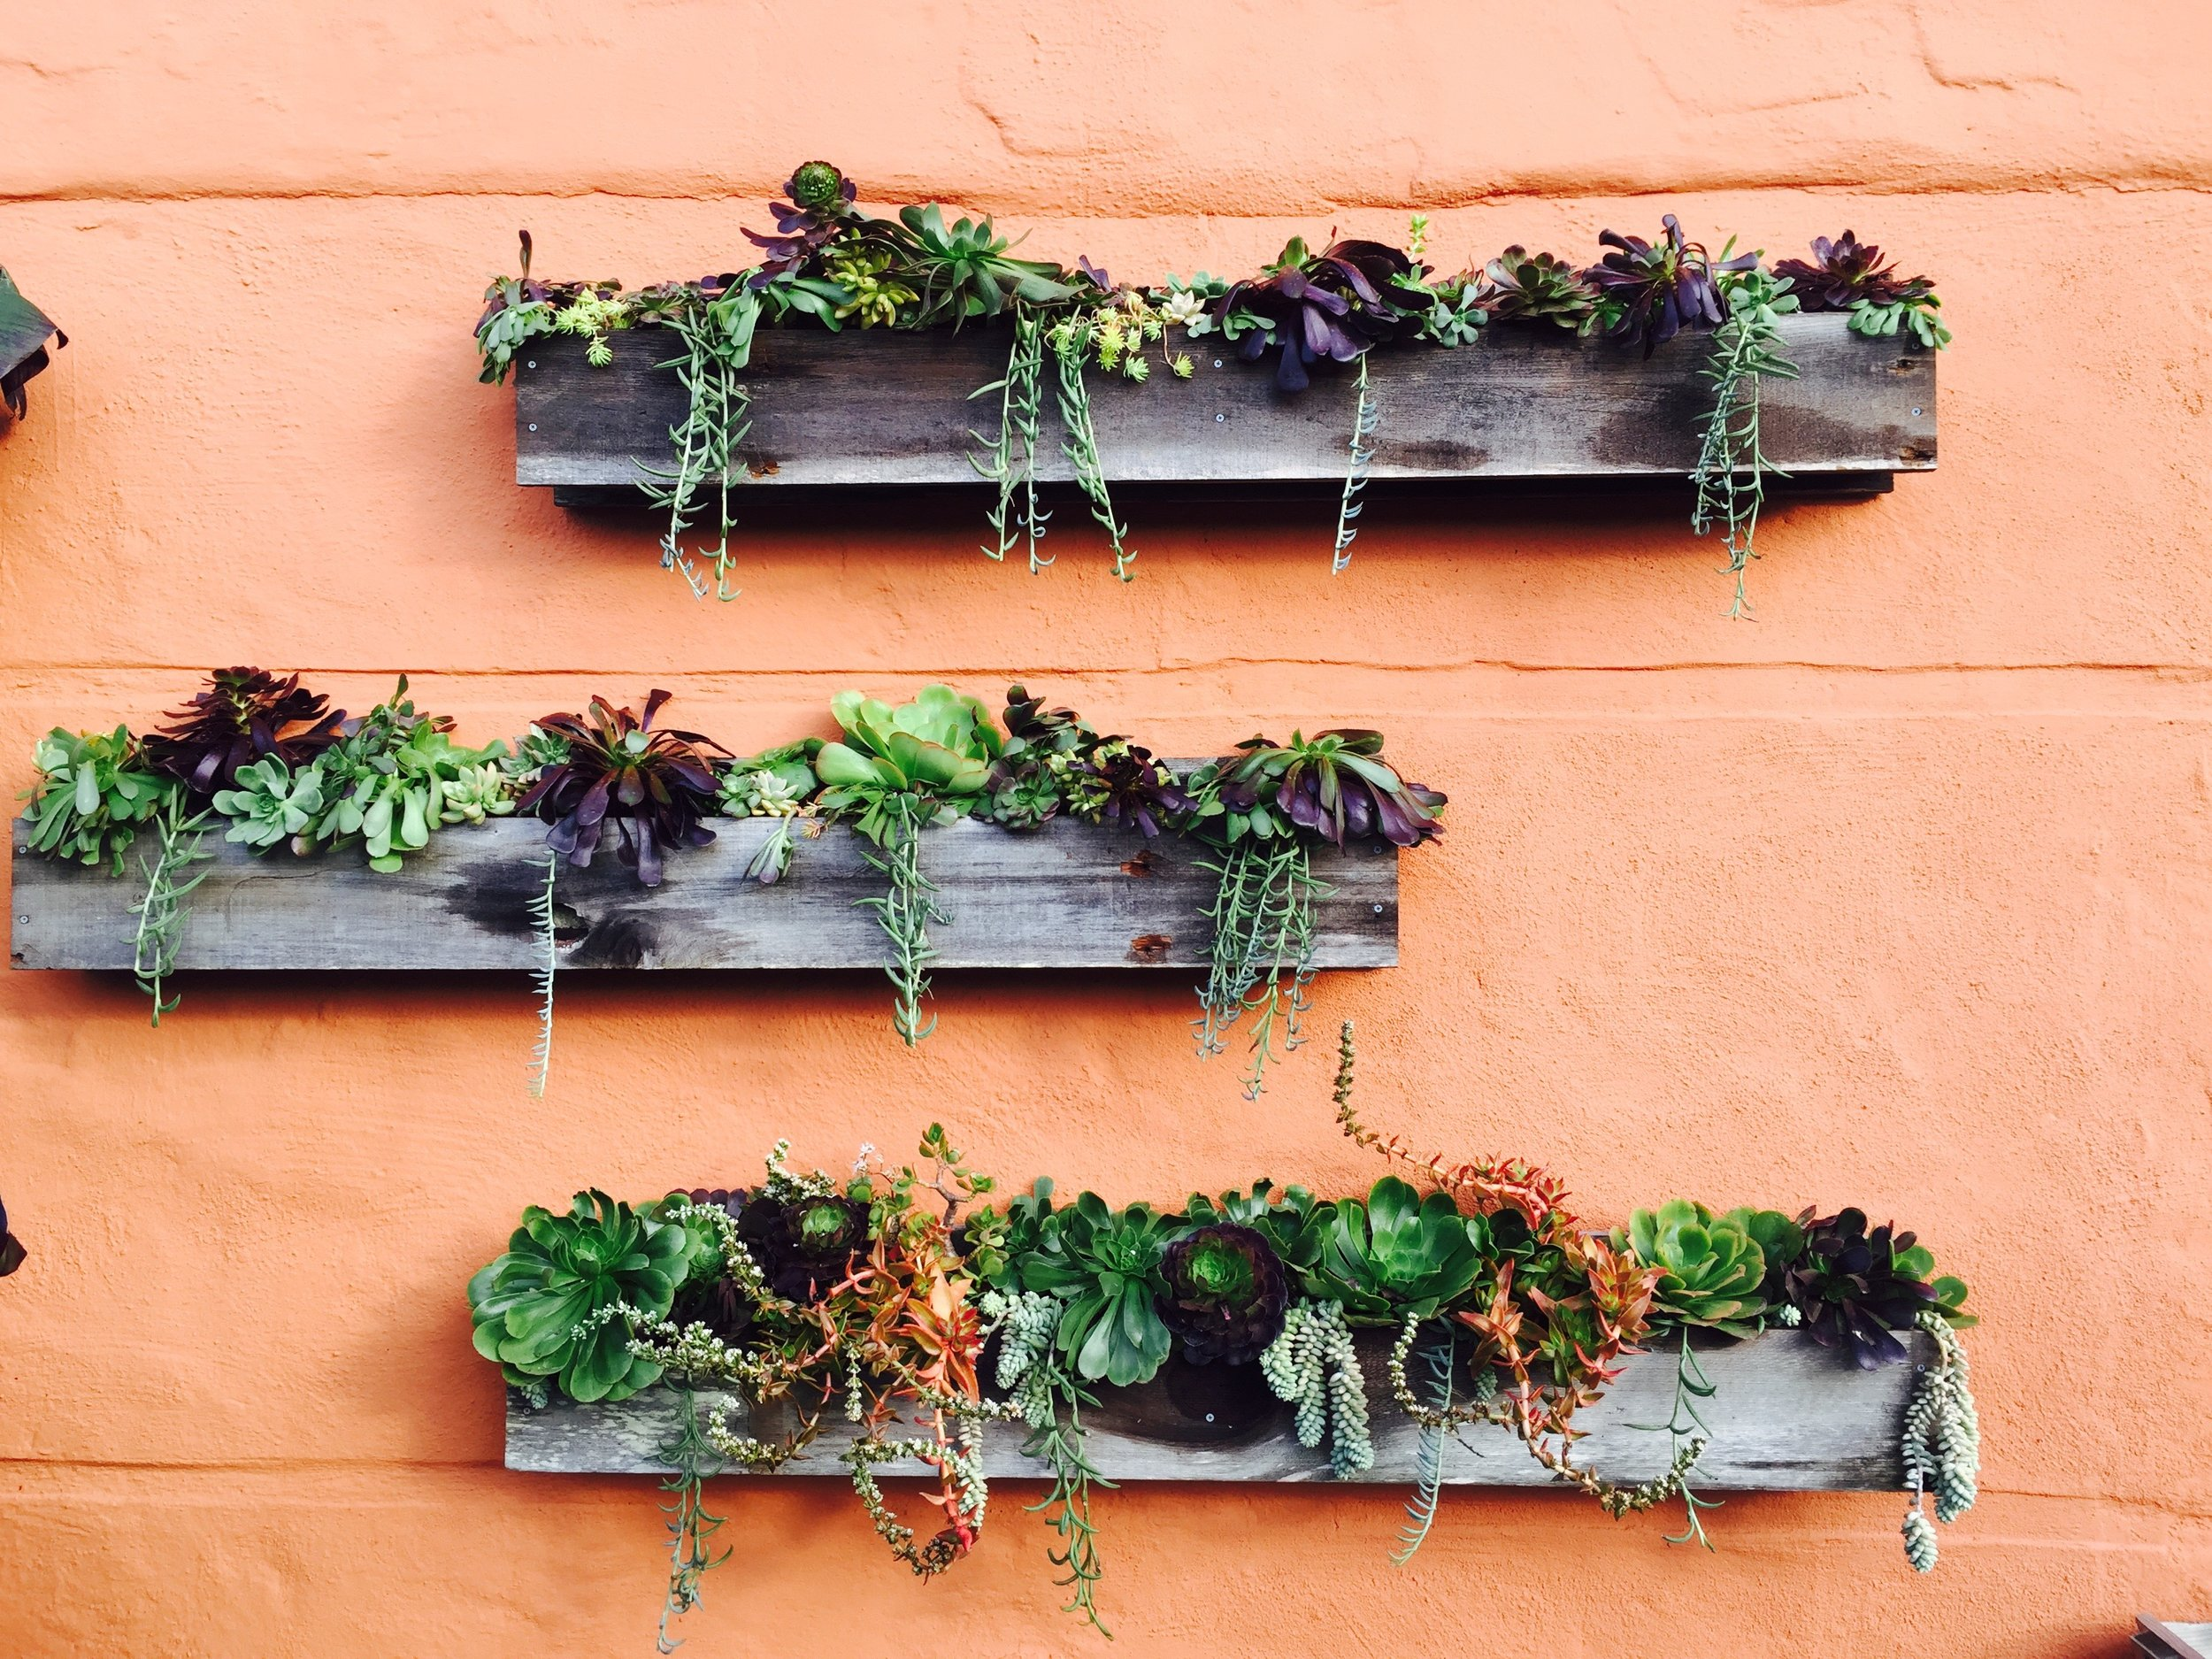 I designed these barn wood outdoor planter boxes and arranged a nice array of succulents.